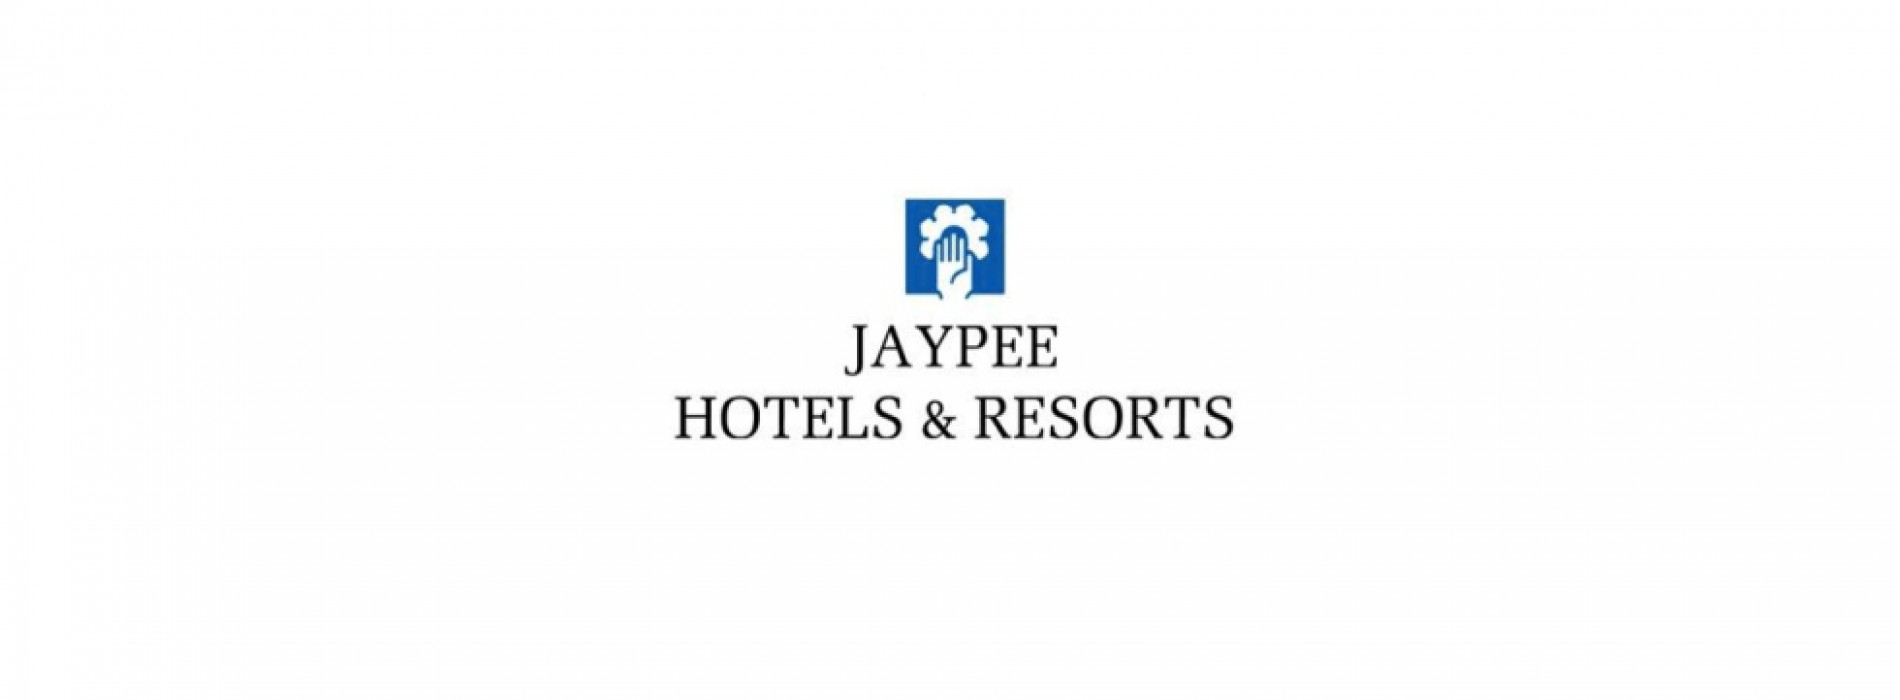 Jaypee Greens Golf Course, Greater Noida bags National Tourism Award for Best Tourism Friendly Golf Course 2015-16